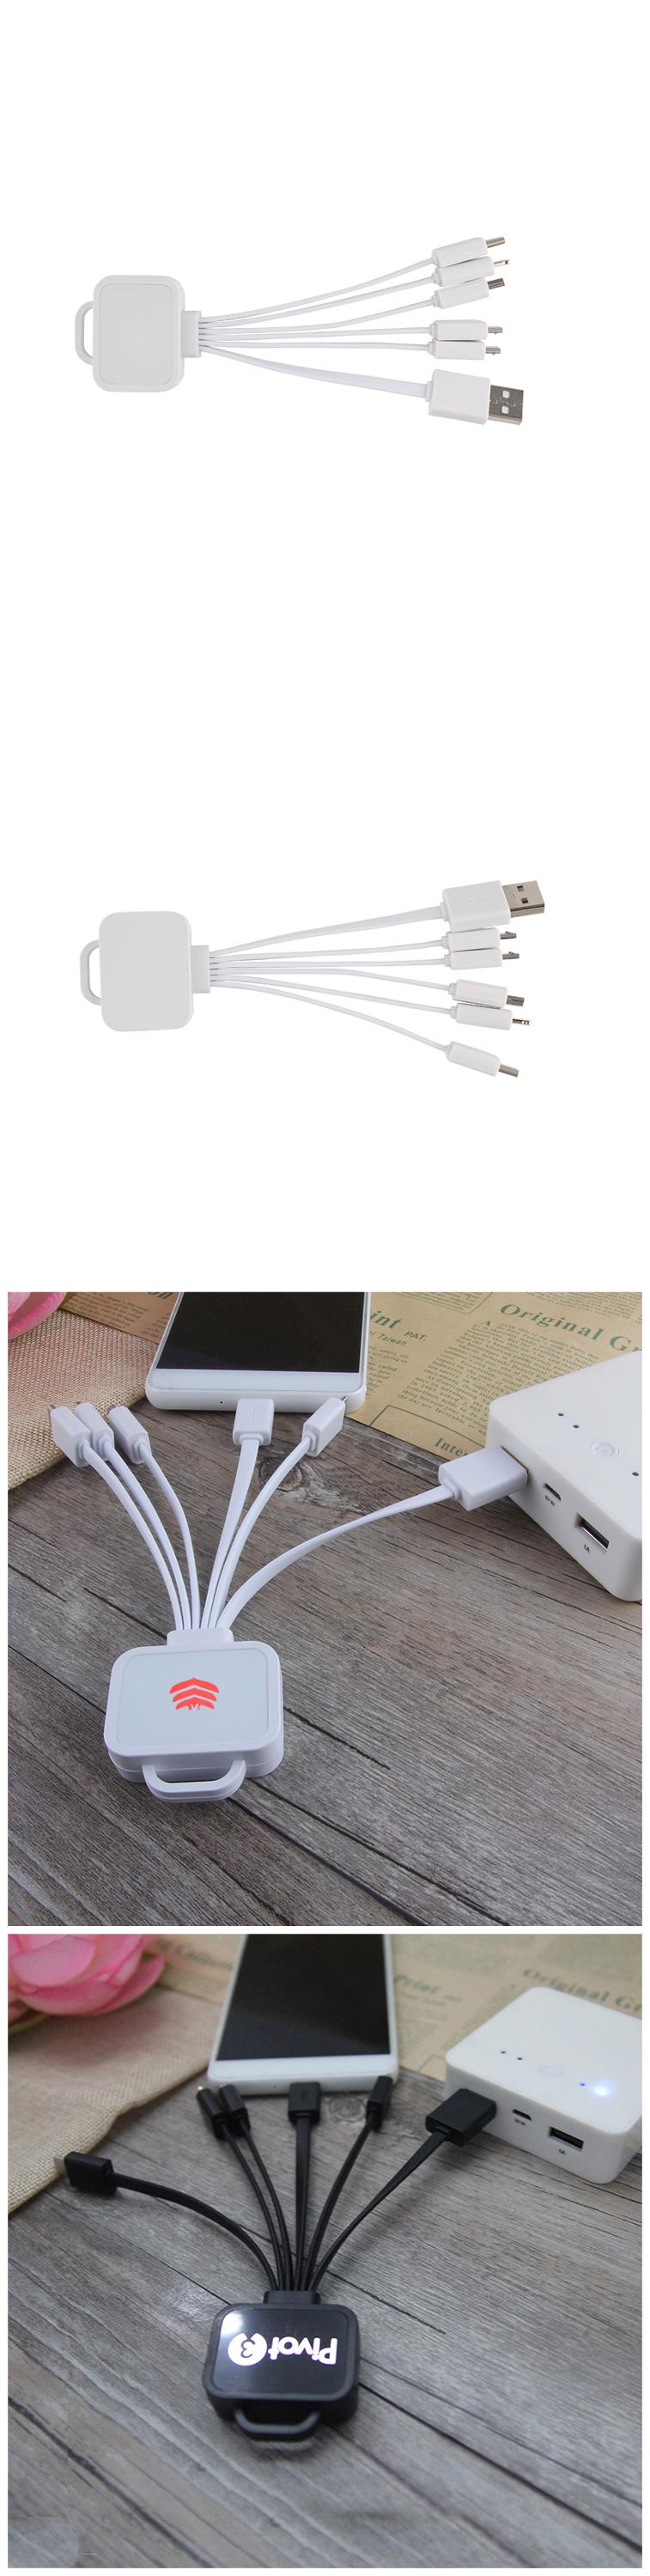 Factory Wholesales Portable Type C Micro USB IOS 3-In-1 Colorful USB Charging Date Cable For Mobile Phone